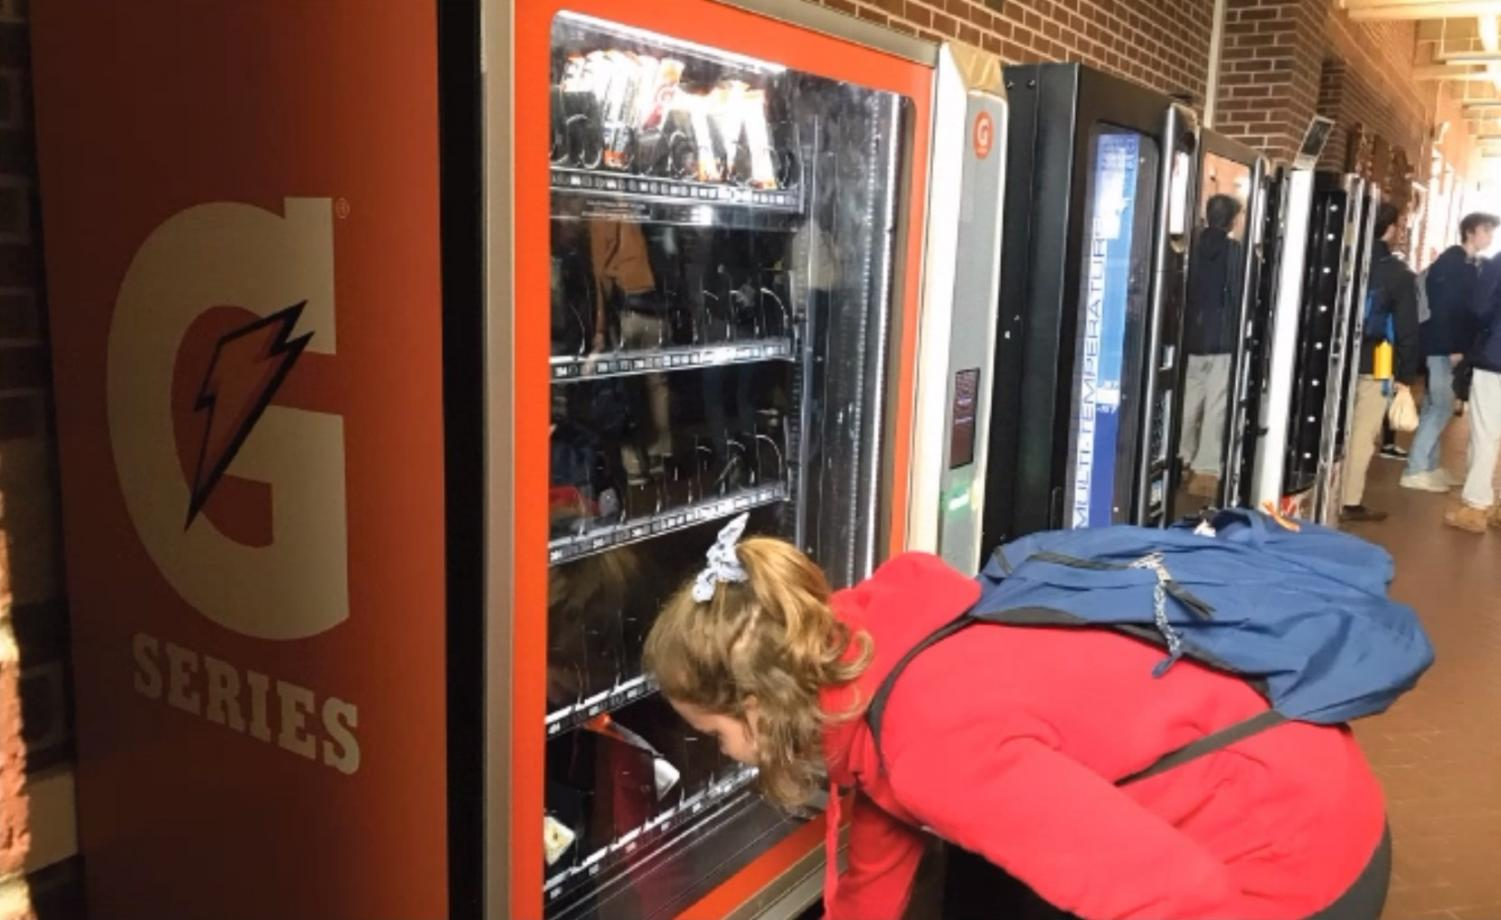 There are two Gatorade vending machines placed throughout the school, one in the Arcade and one next to the locker rooms under the Junior High Gym. The machines were installed in December 2018 as a part of a sponsorship between the WHHS Athletic Department and Gatorade.